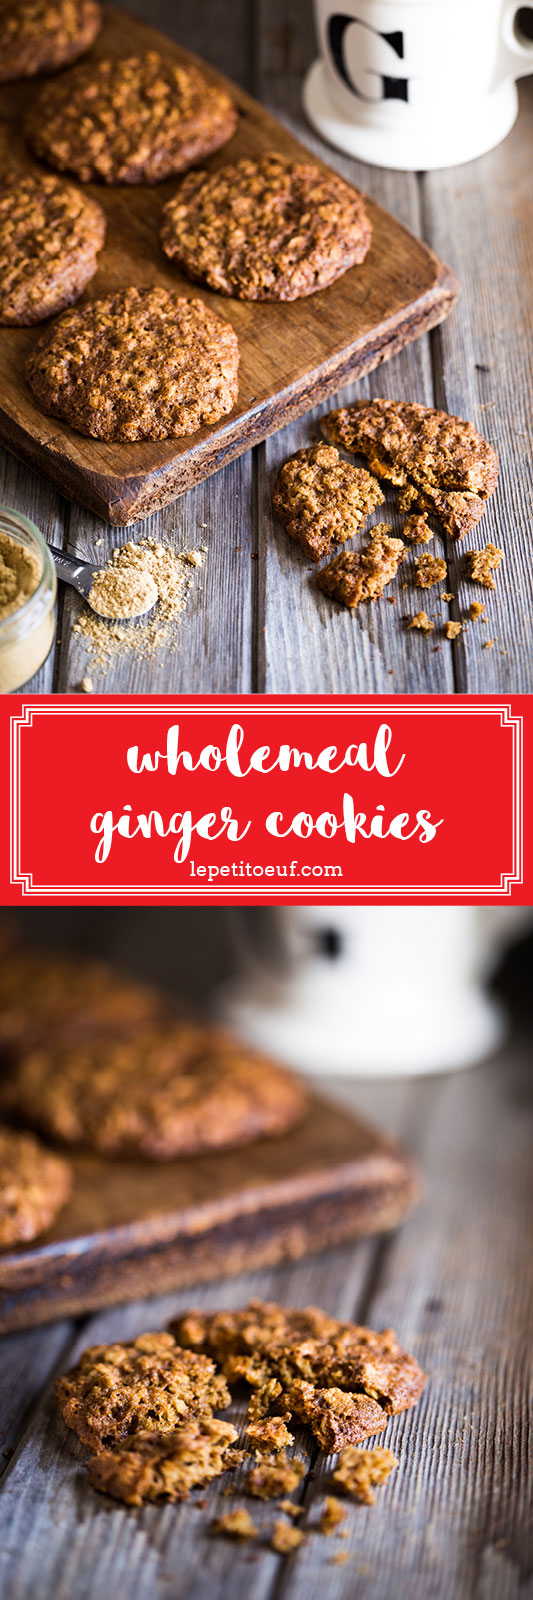 Wholemeal ginger cookies made with spelt flour and reduced sugar, as well as some wholesome oats, to really bump up the micronutrients in this recipe. Fiery ginger makes for a perfect flavour to go alongside a mug of hot milk on a cold day.